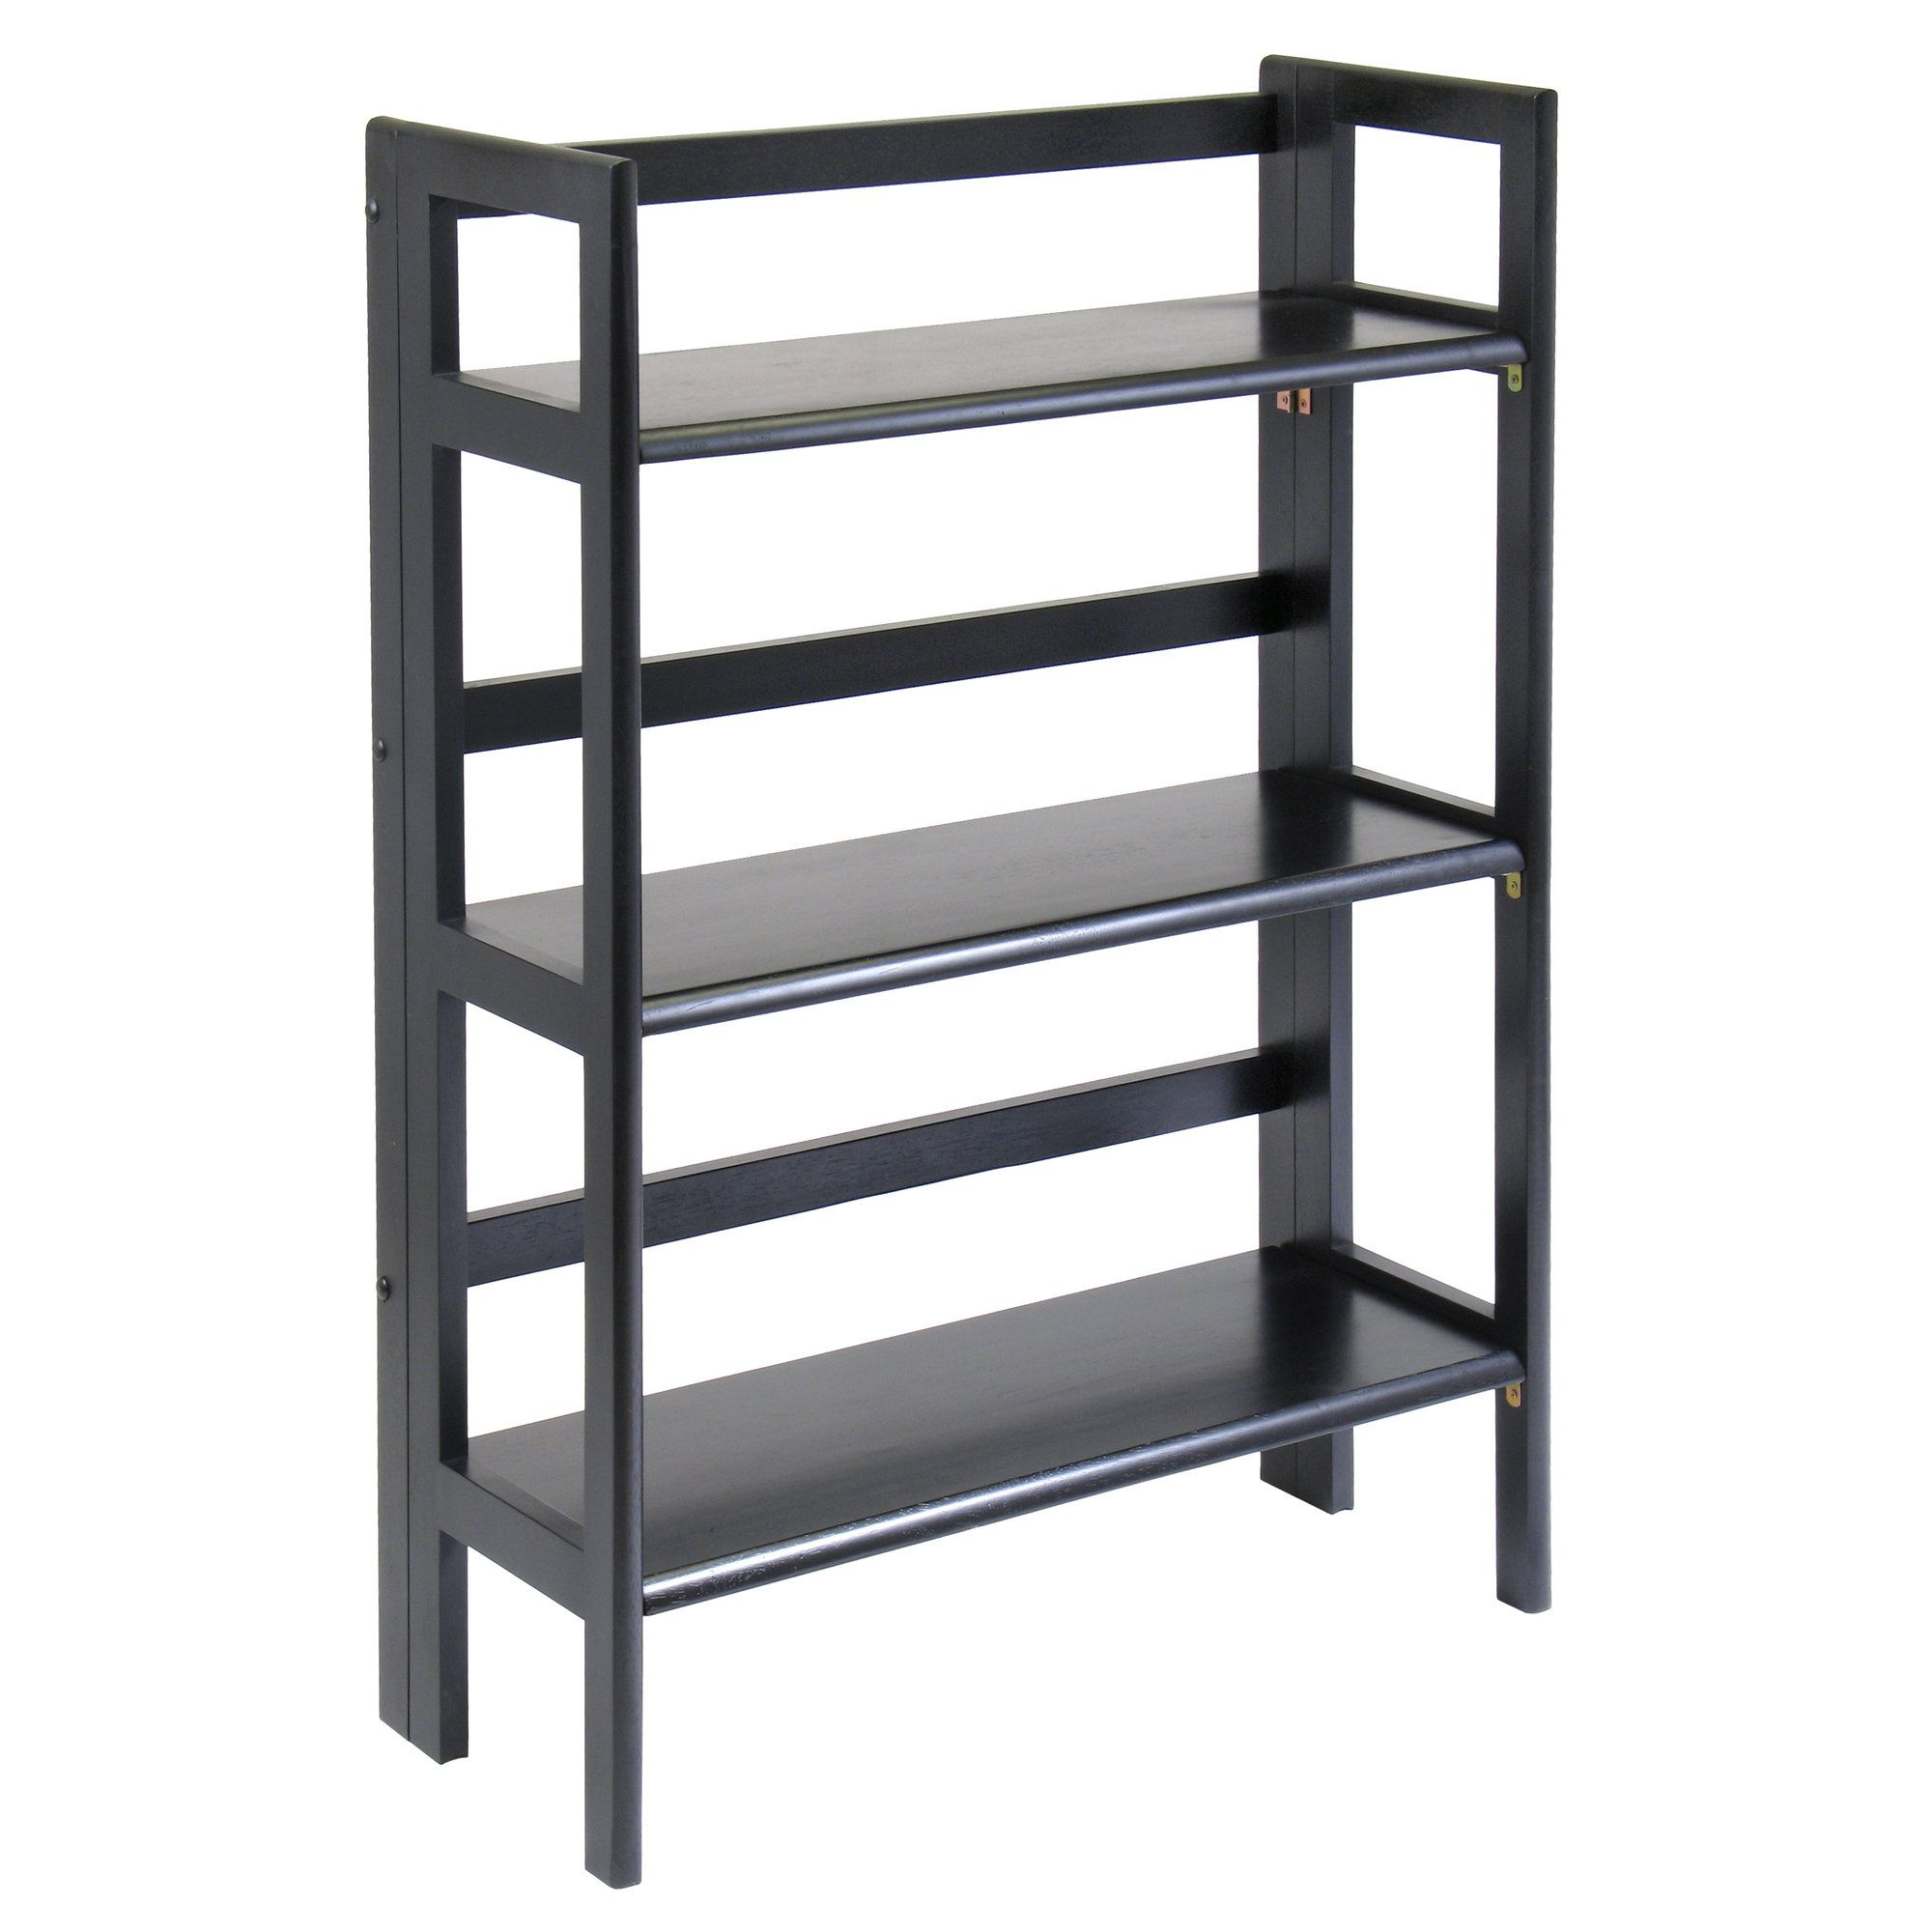 "Basics Folding 38.5"" Etagere Bookcase"